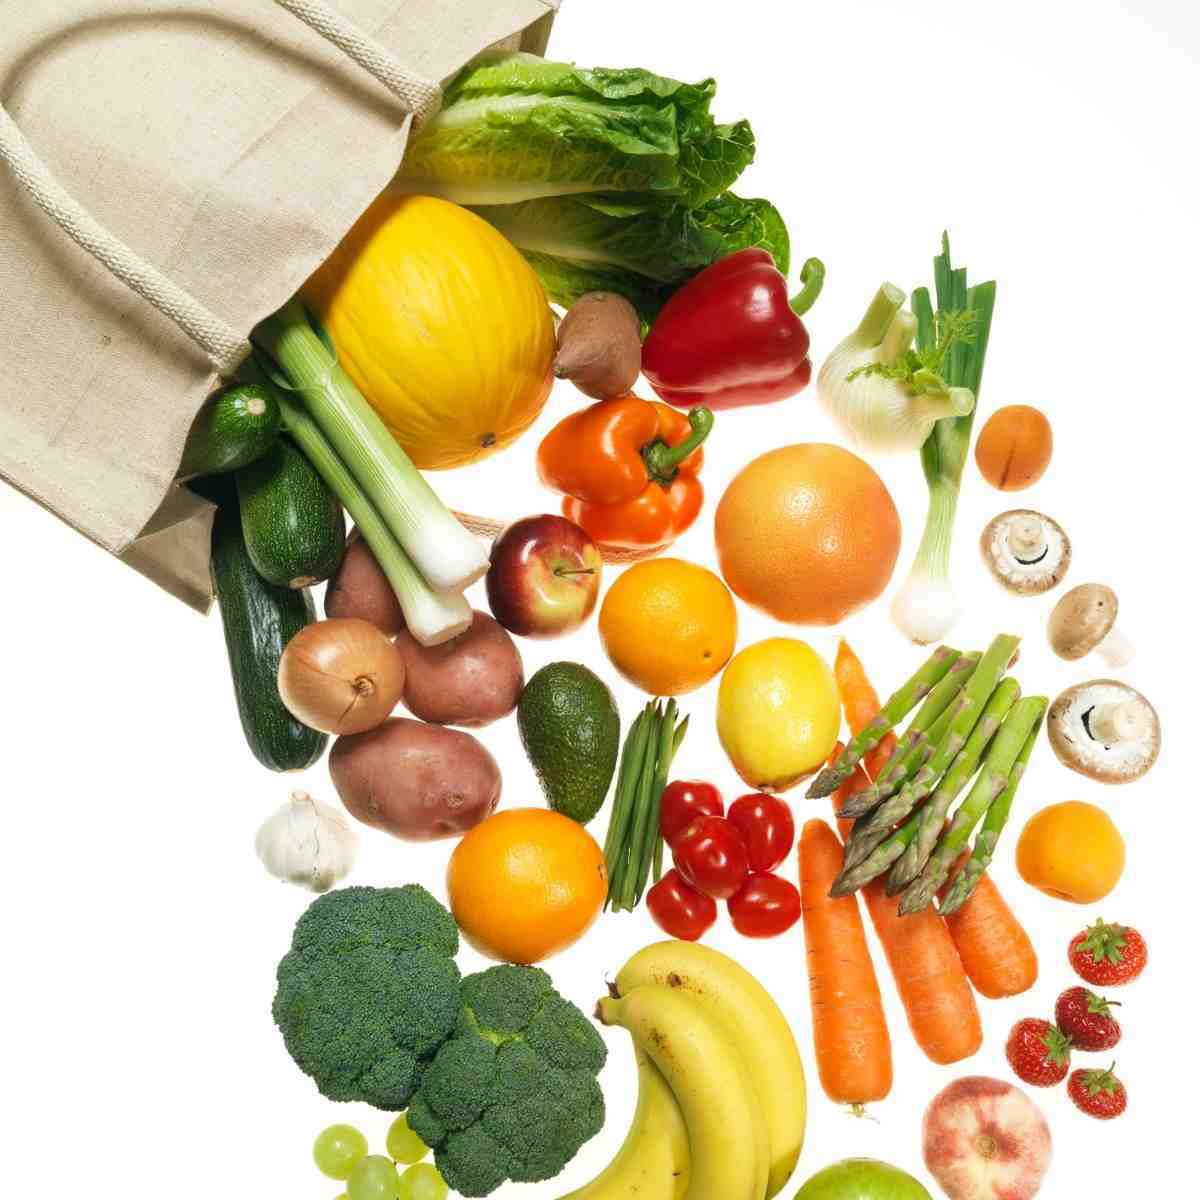 A variety of fruits and vegetables that are good sources of gluten free fiber.